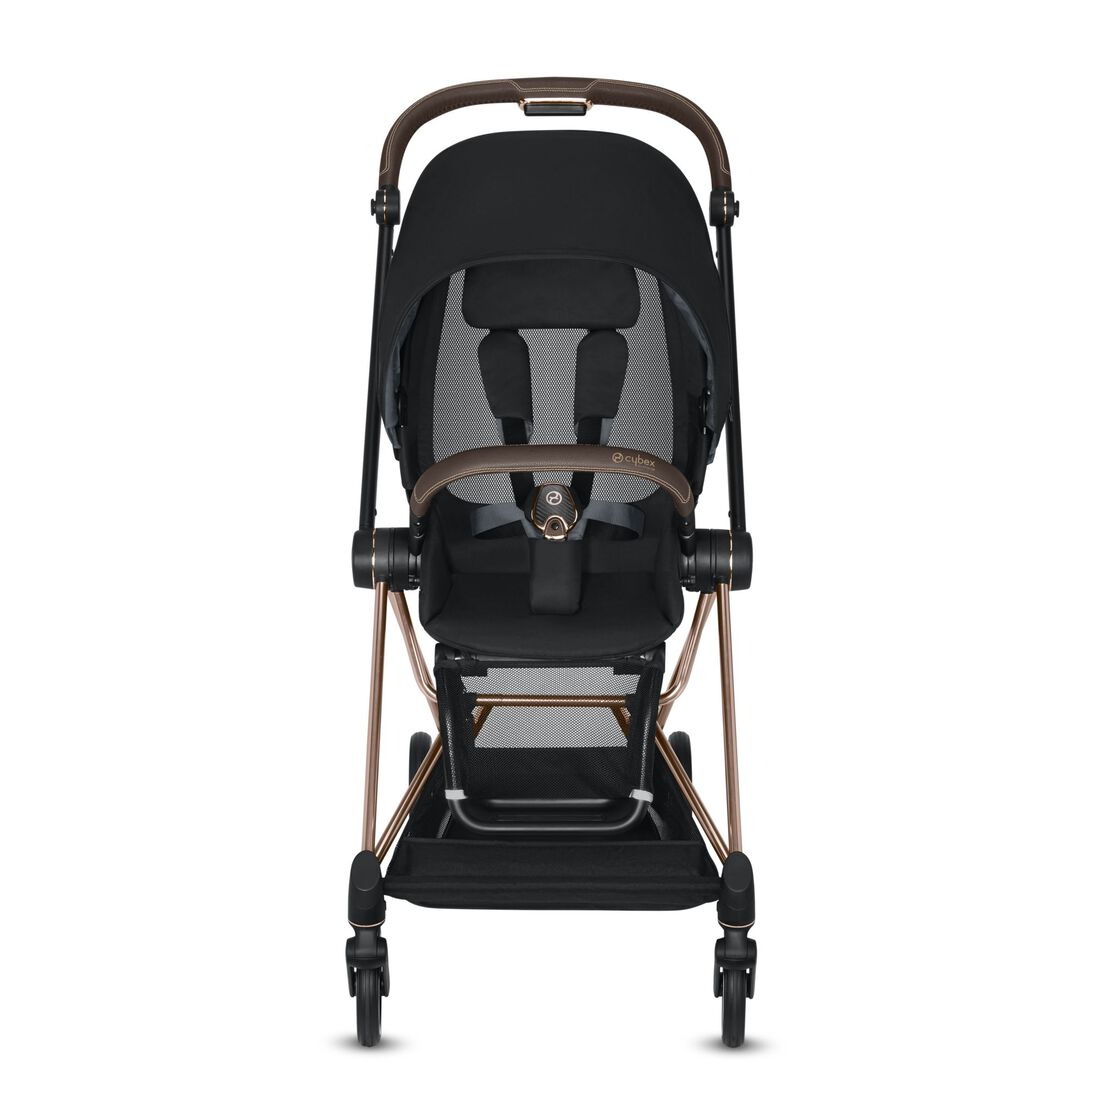 CYBEX Mios Frame - Rosegold in Rosegold large image number 7